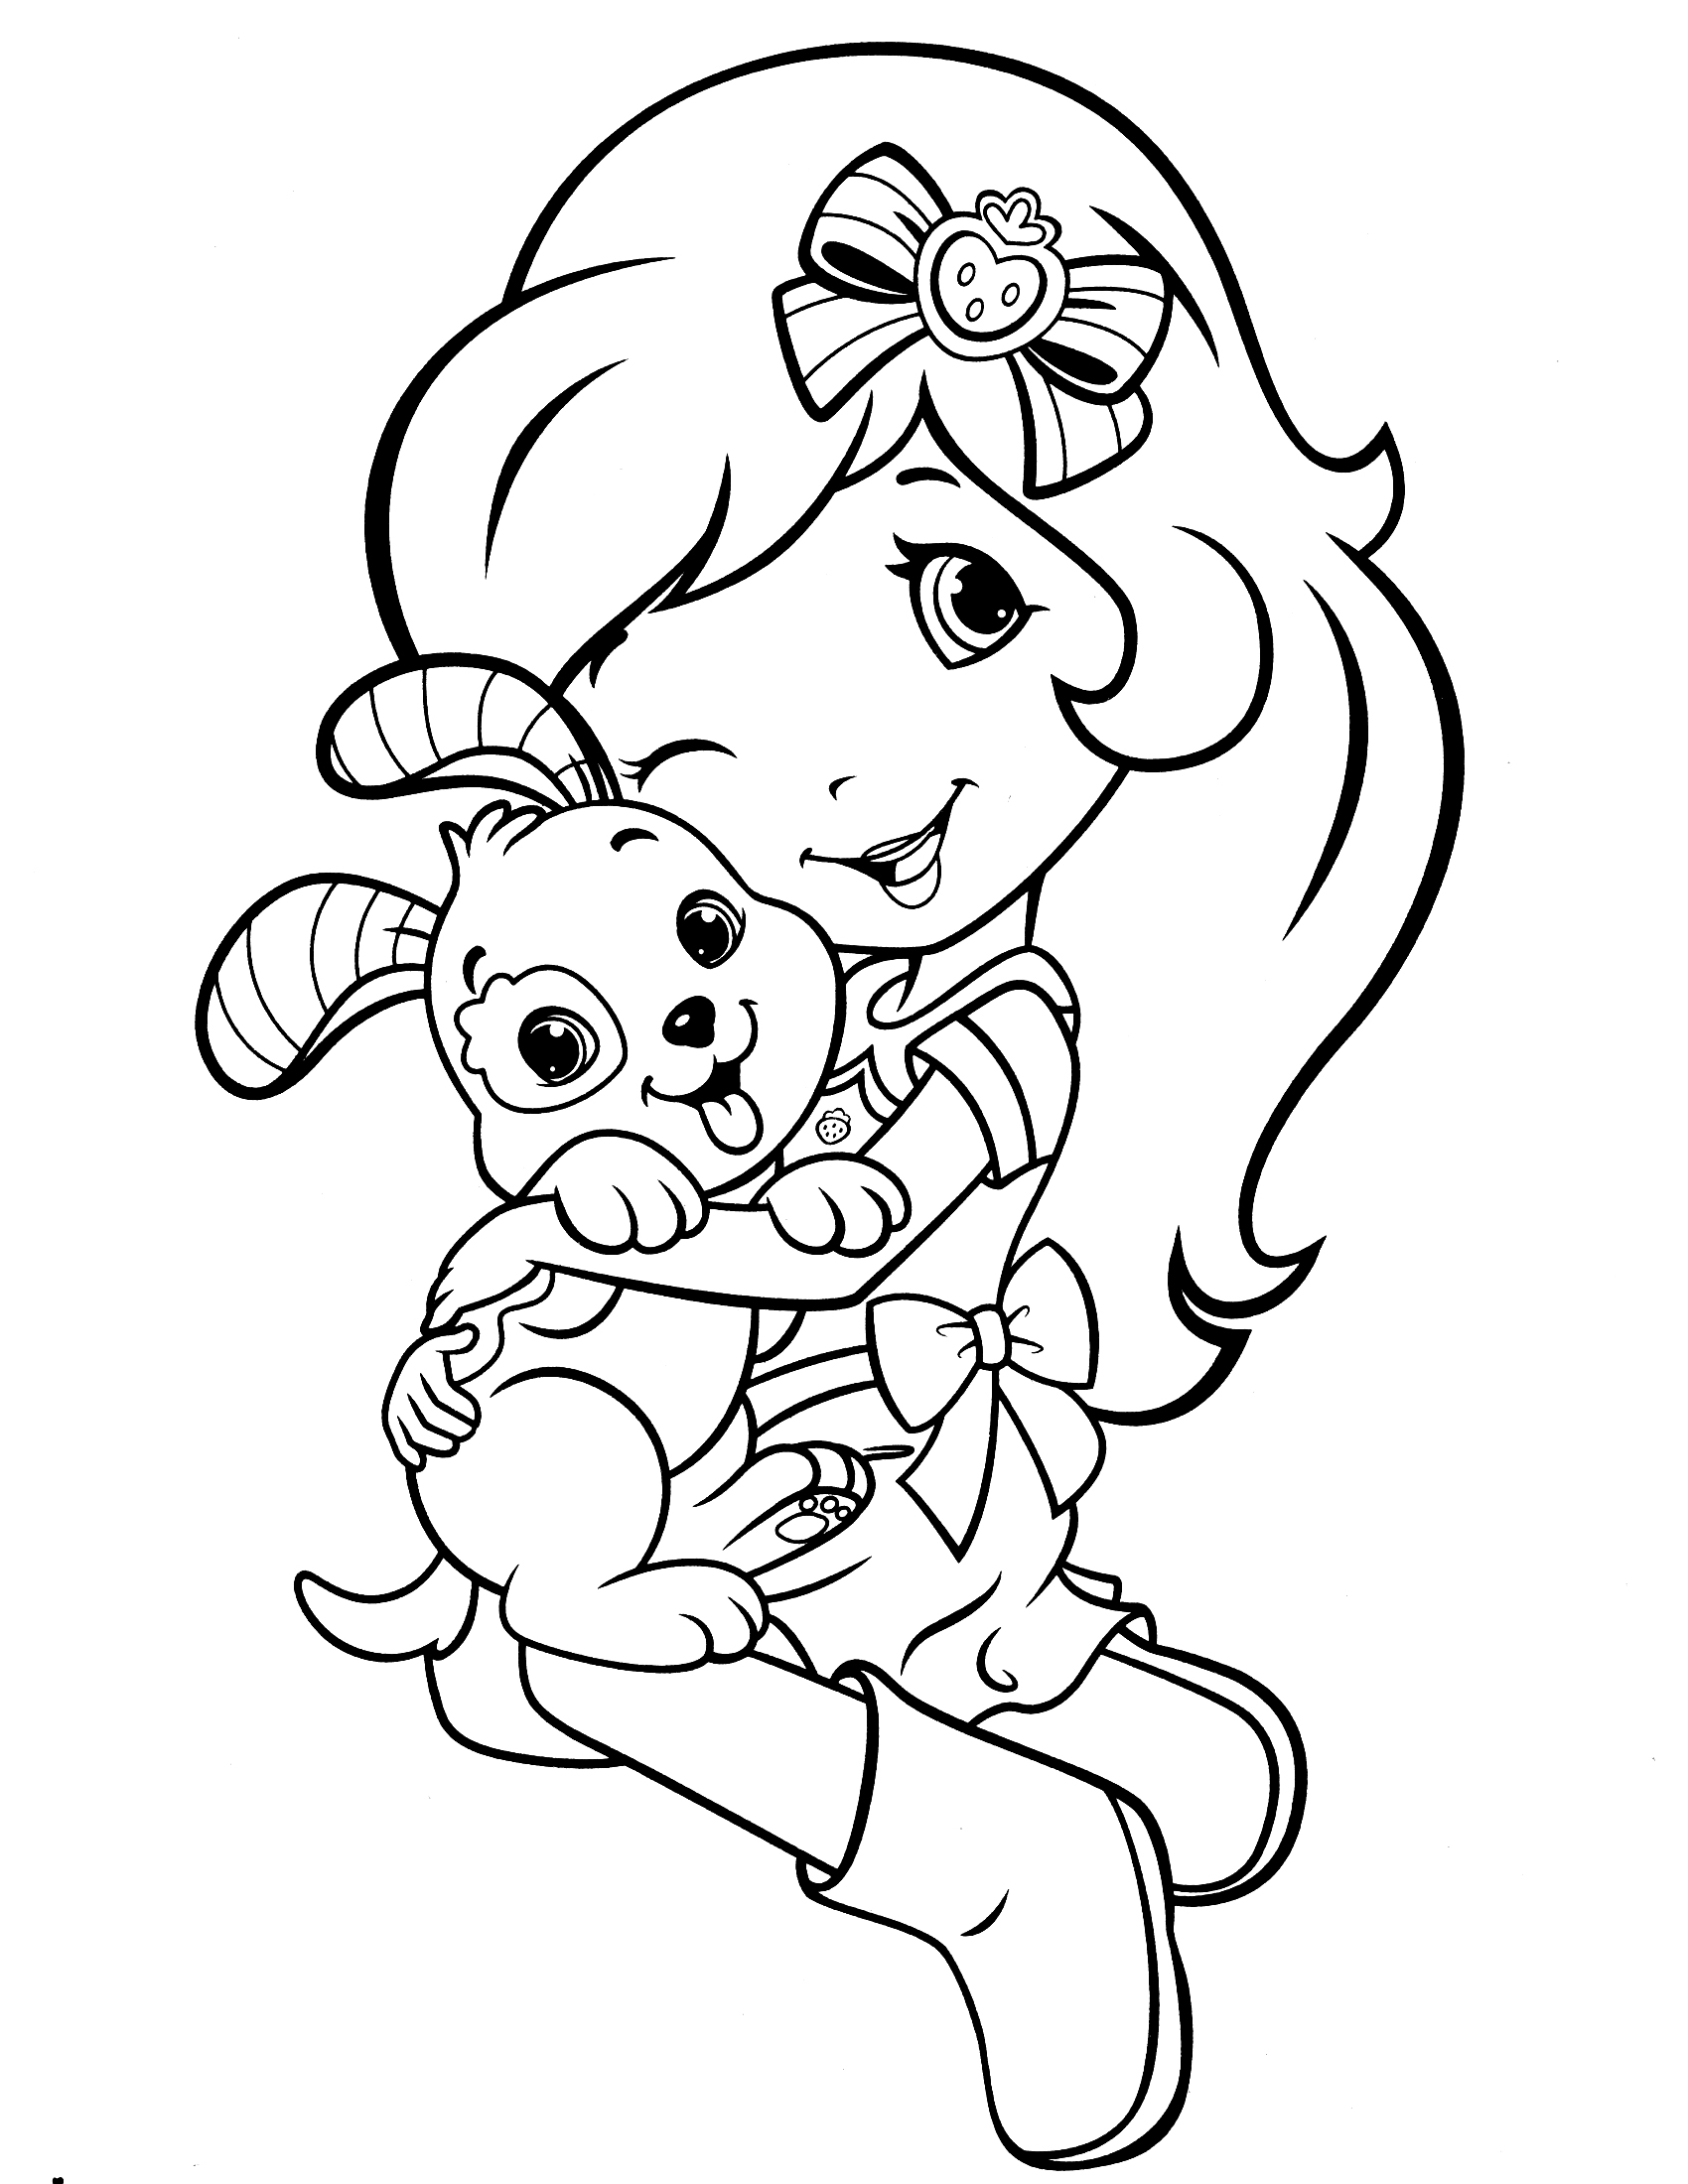 Strawberry Shortcake Coloring Pages Cool Coloring Pages